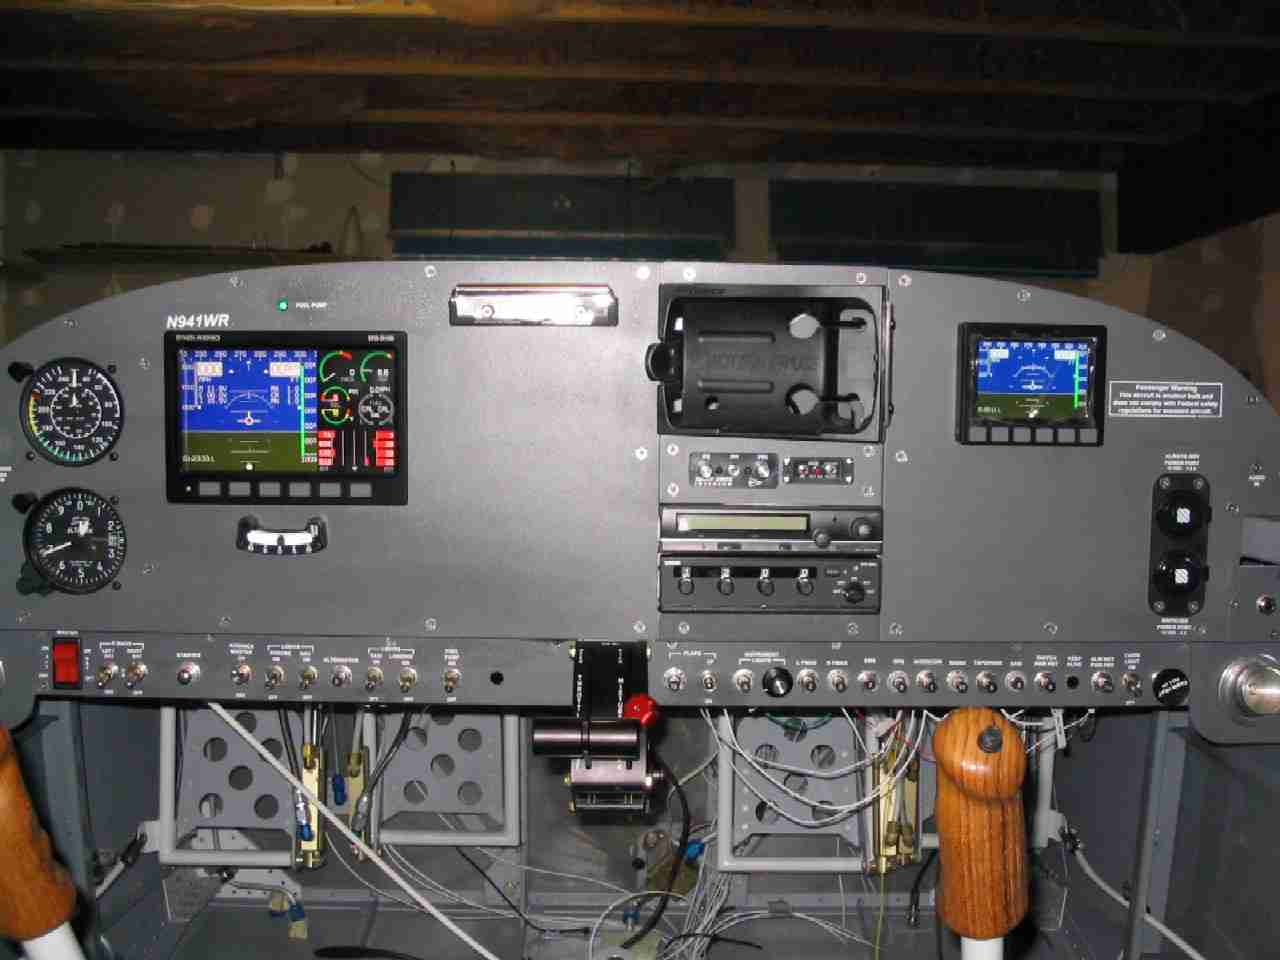 Garmin 496 Connection Vaf Forums 530 Wiring Diagram My Panel Has A Dynon D100 Efis And D10 Ems Bussed Together Sigtronics Stereo Intercom Icom Radio Along With The